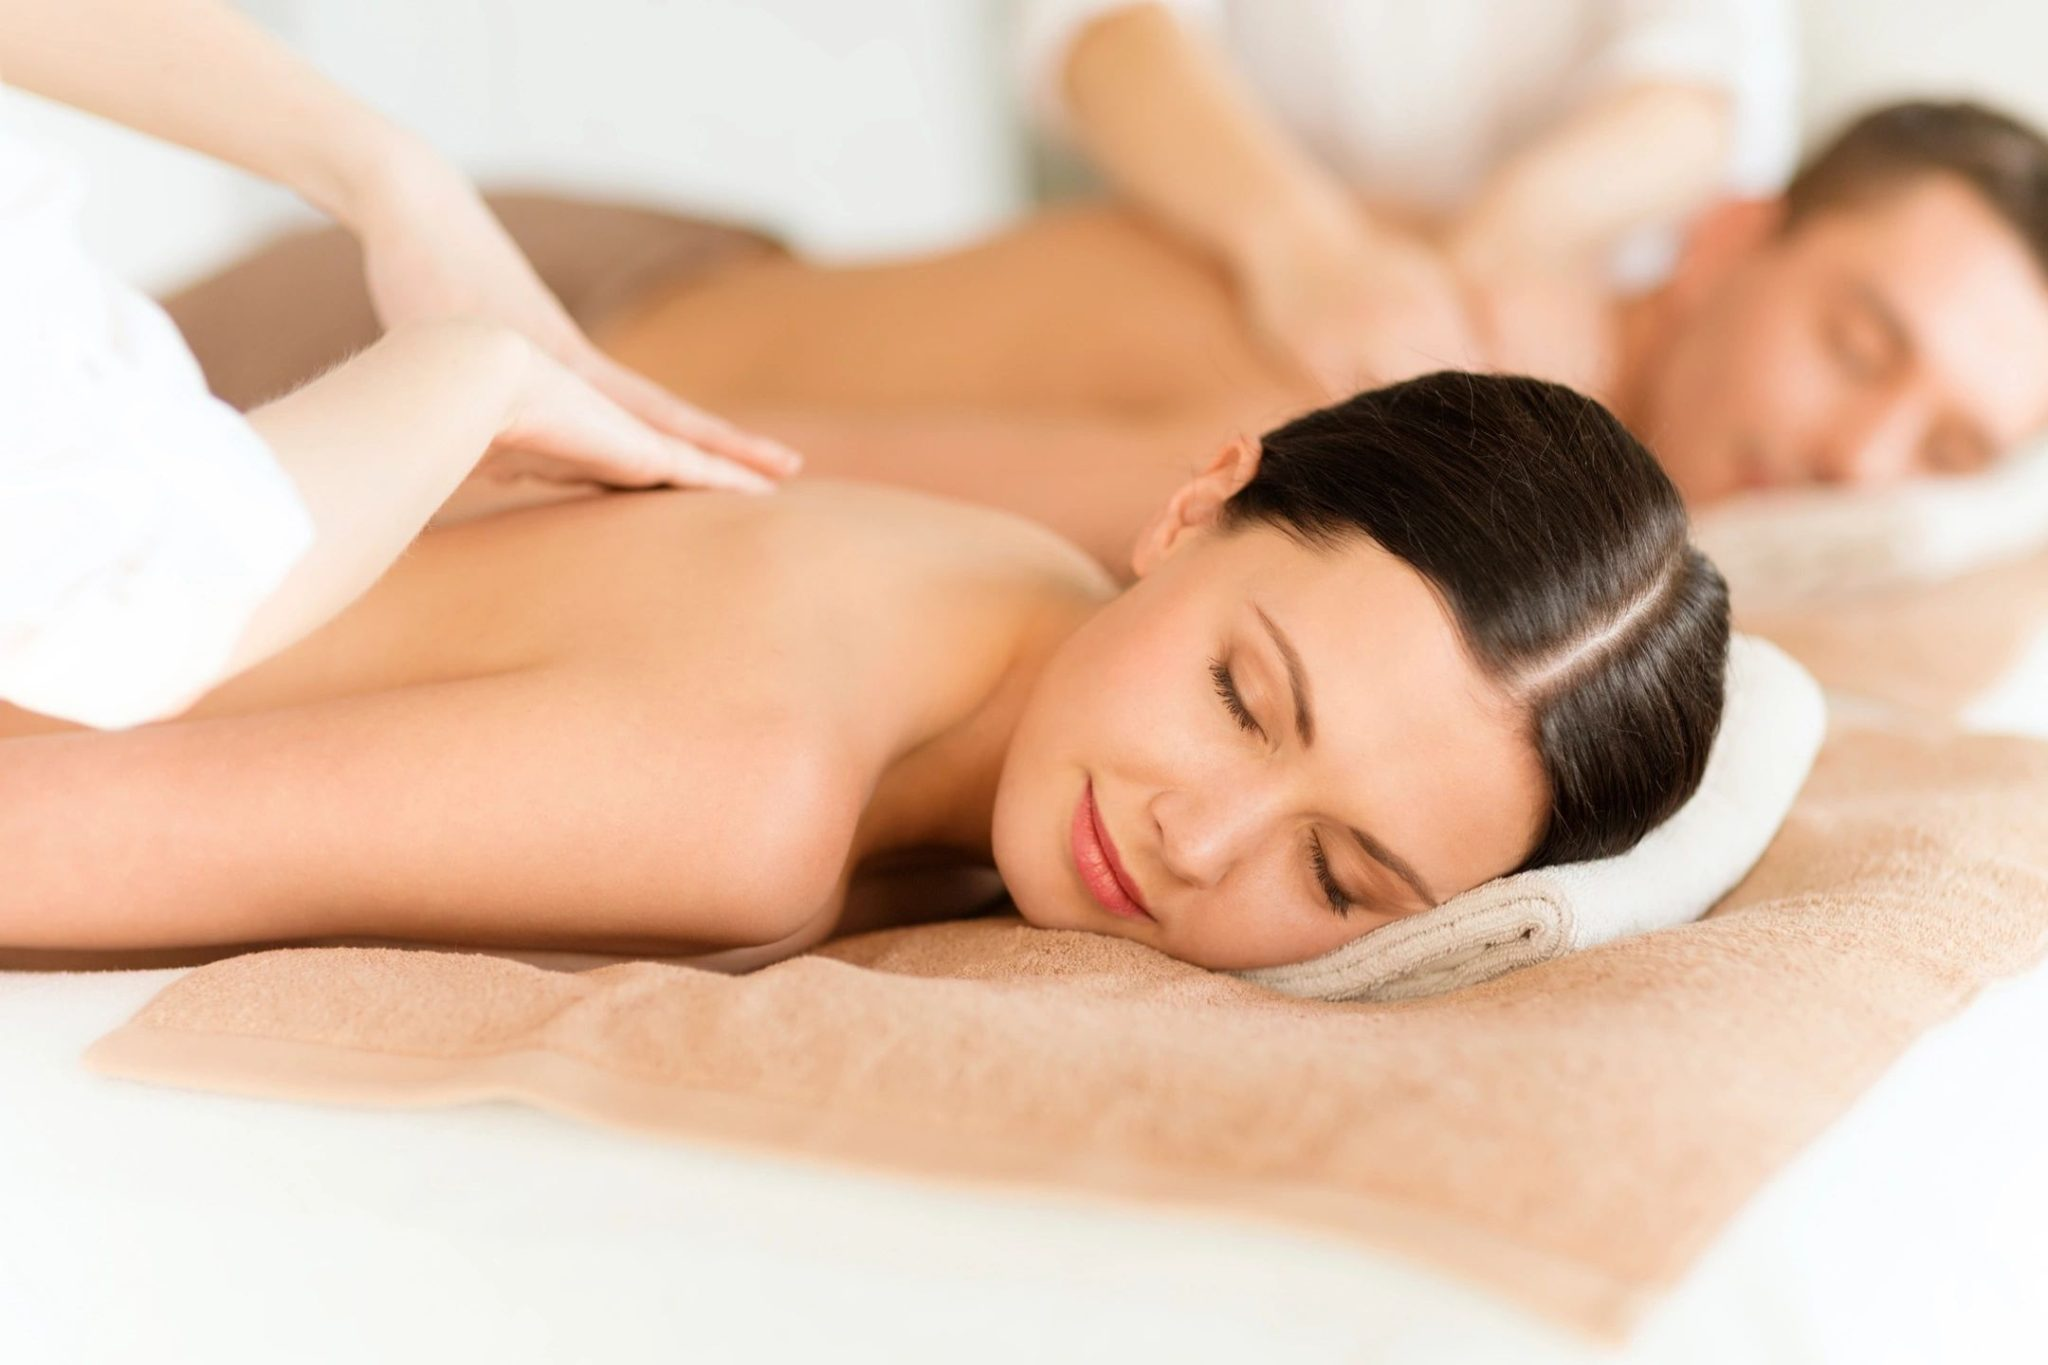 couples relax with a massage